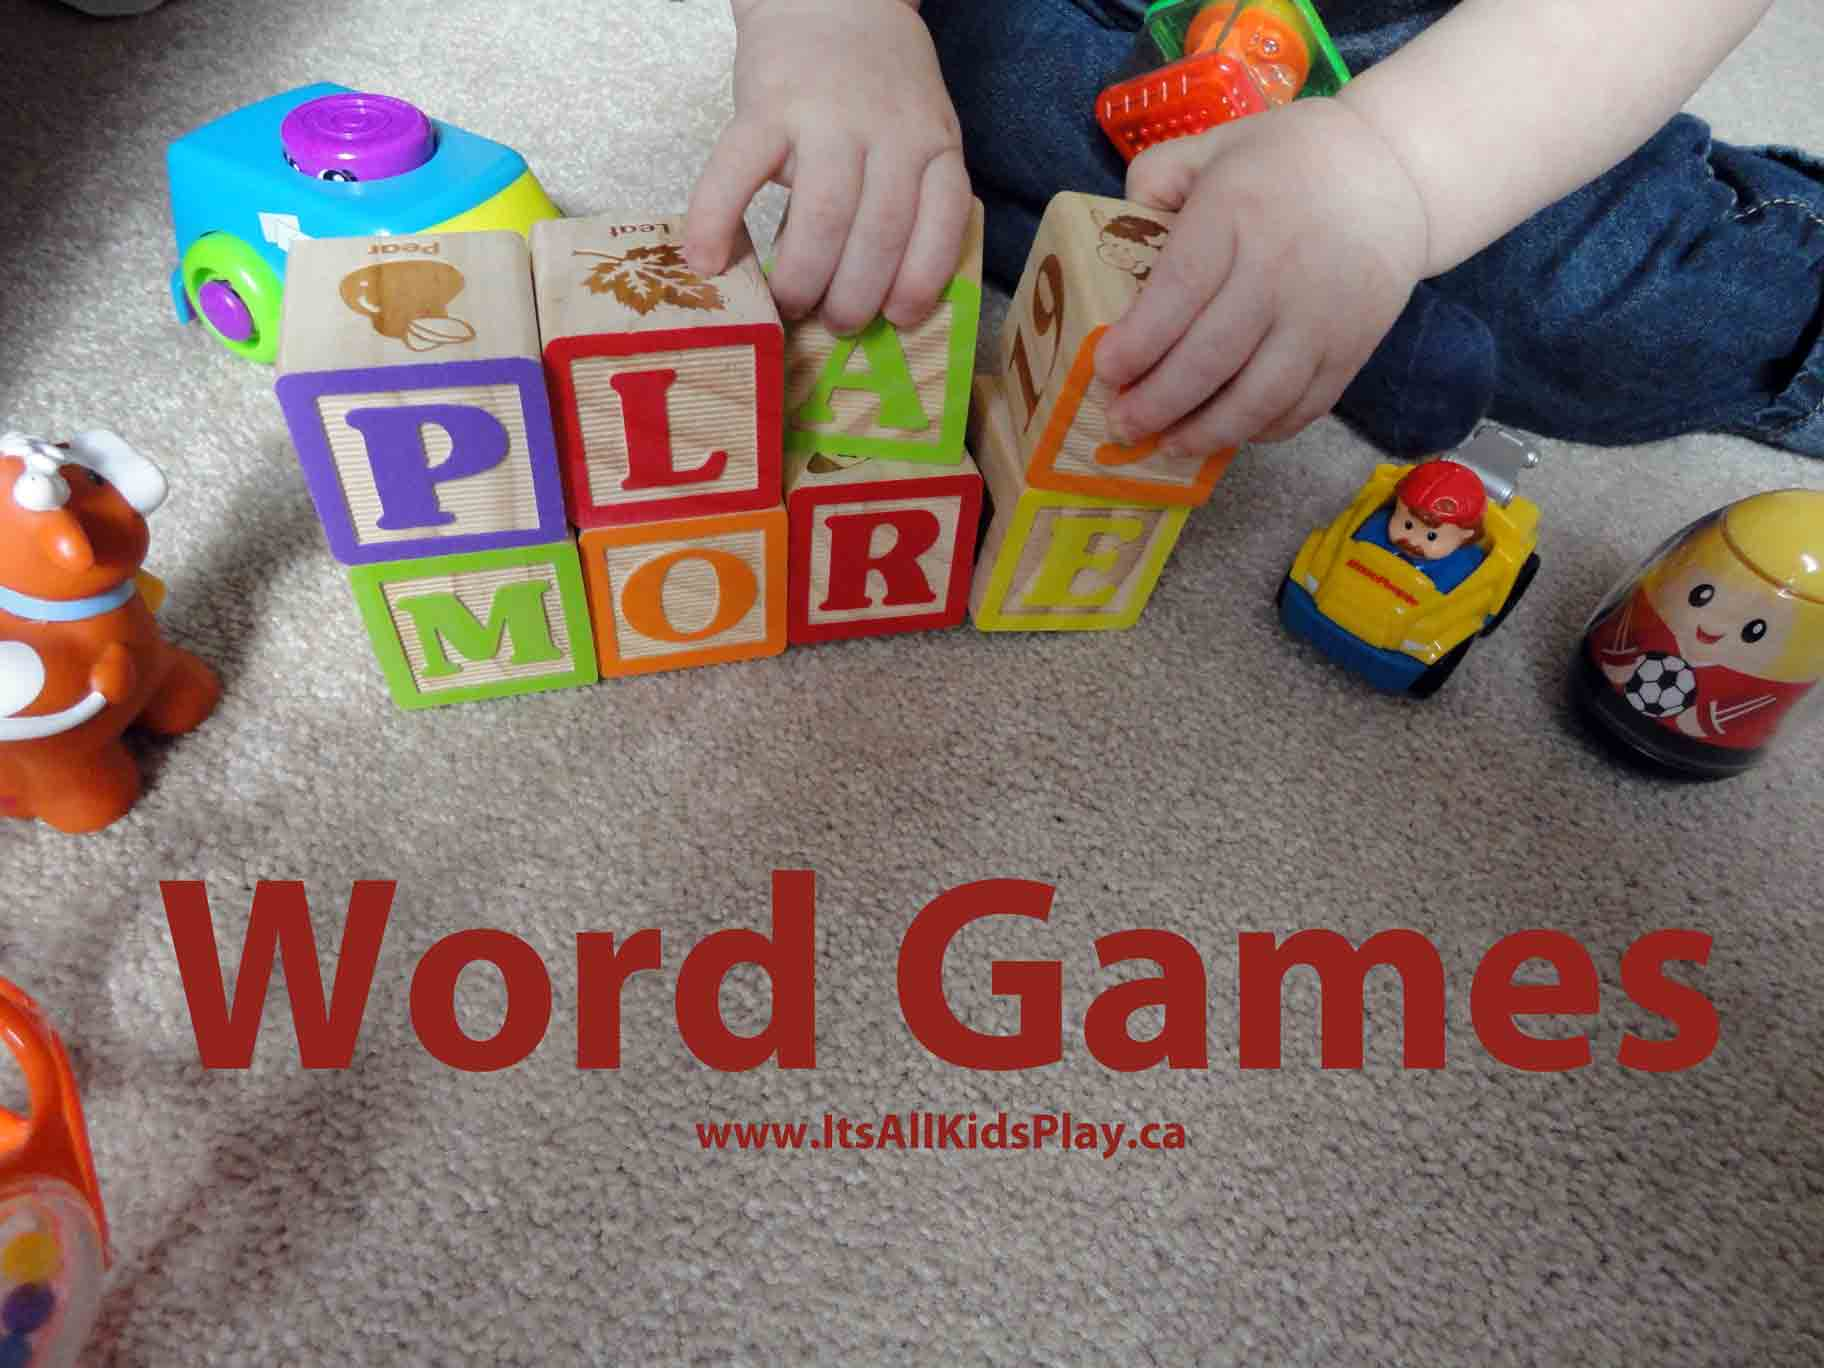 Word Games – It s All Kid s Play